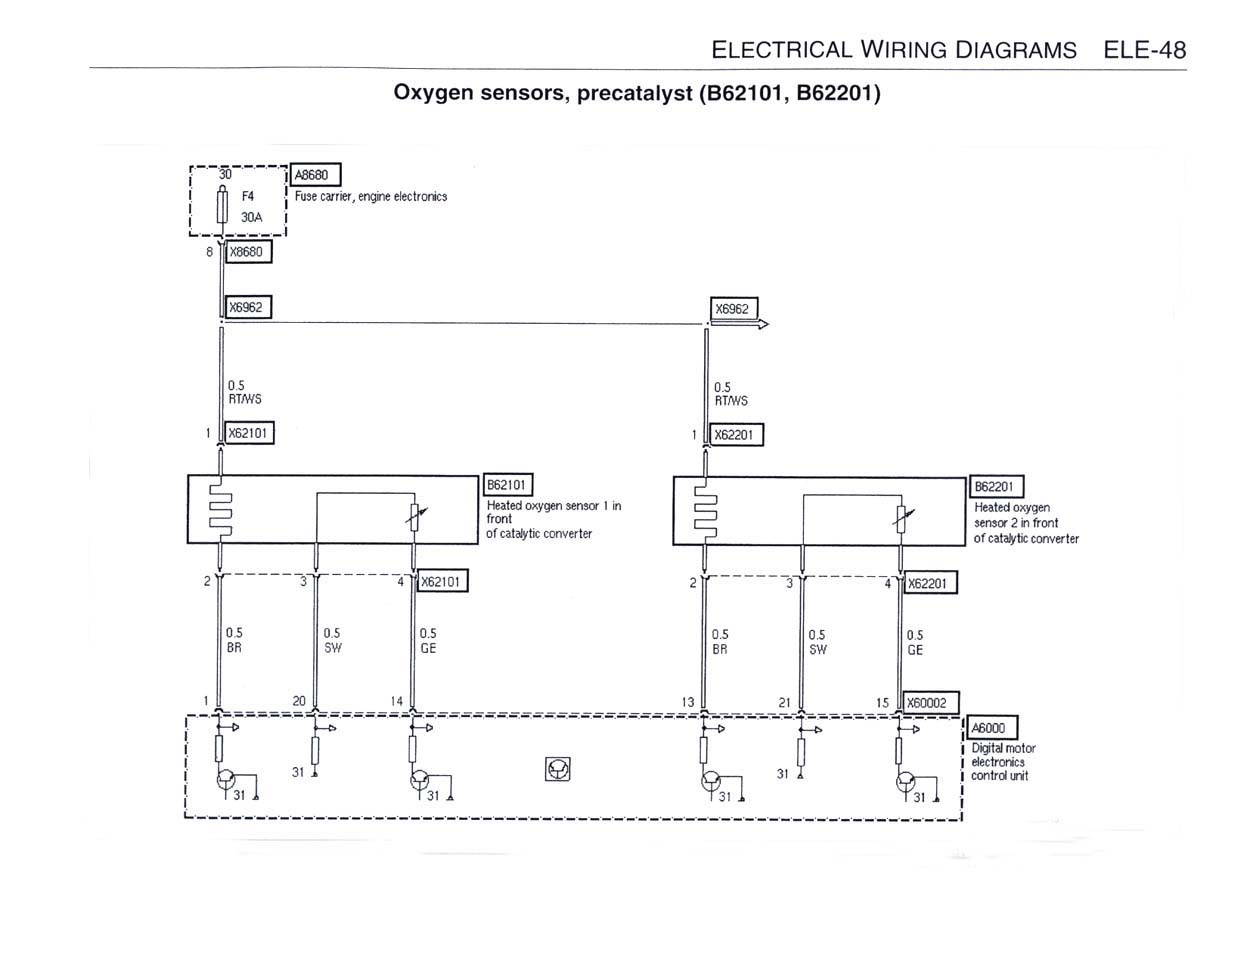 Active autowerke performance part installation instructions e46 nm post cat 02 sensor schematic e46 m3 header 02 sensor configuration guide e46 m3 rear exhaust g6 installation guide pooptronica Choice Image